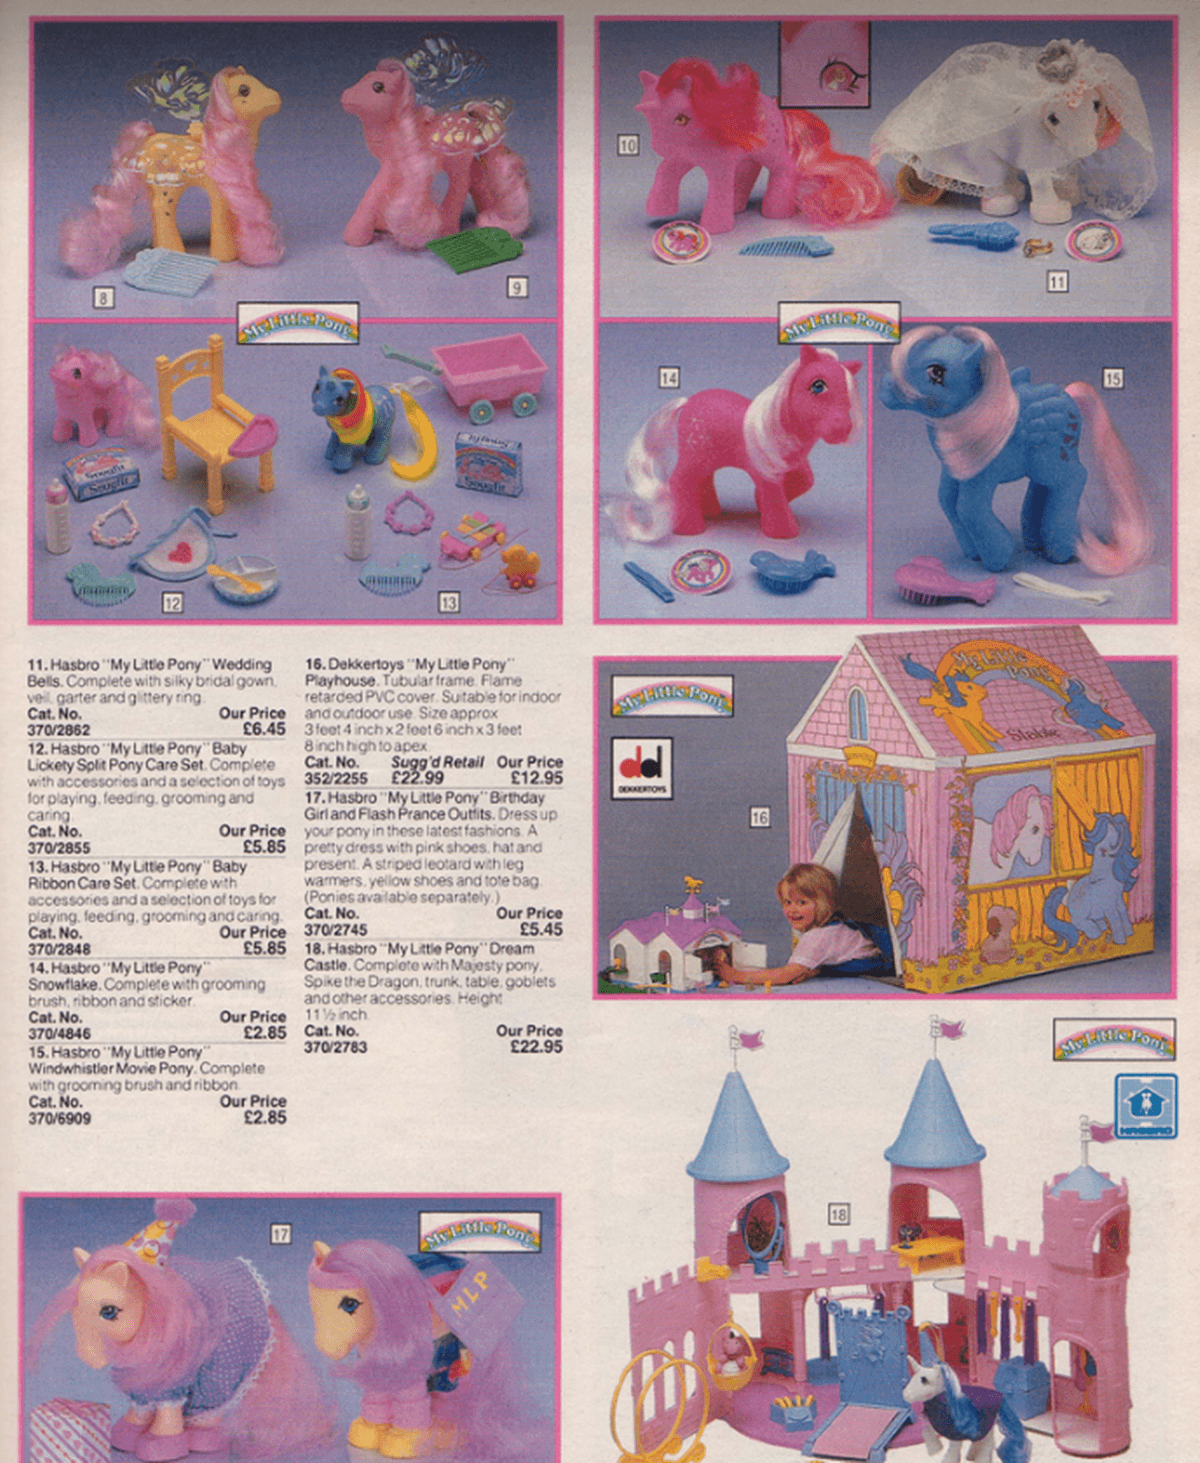 11 Take A Look Inside An Argos Catalogue From 1986!